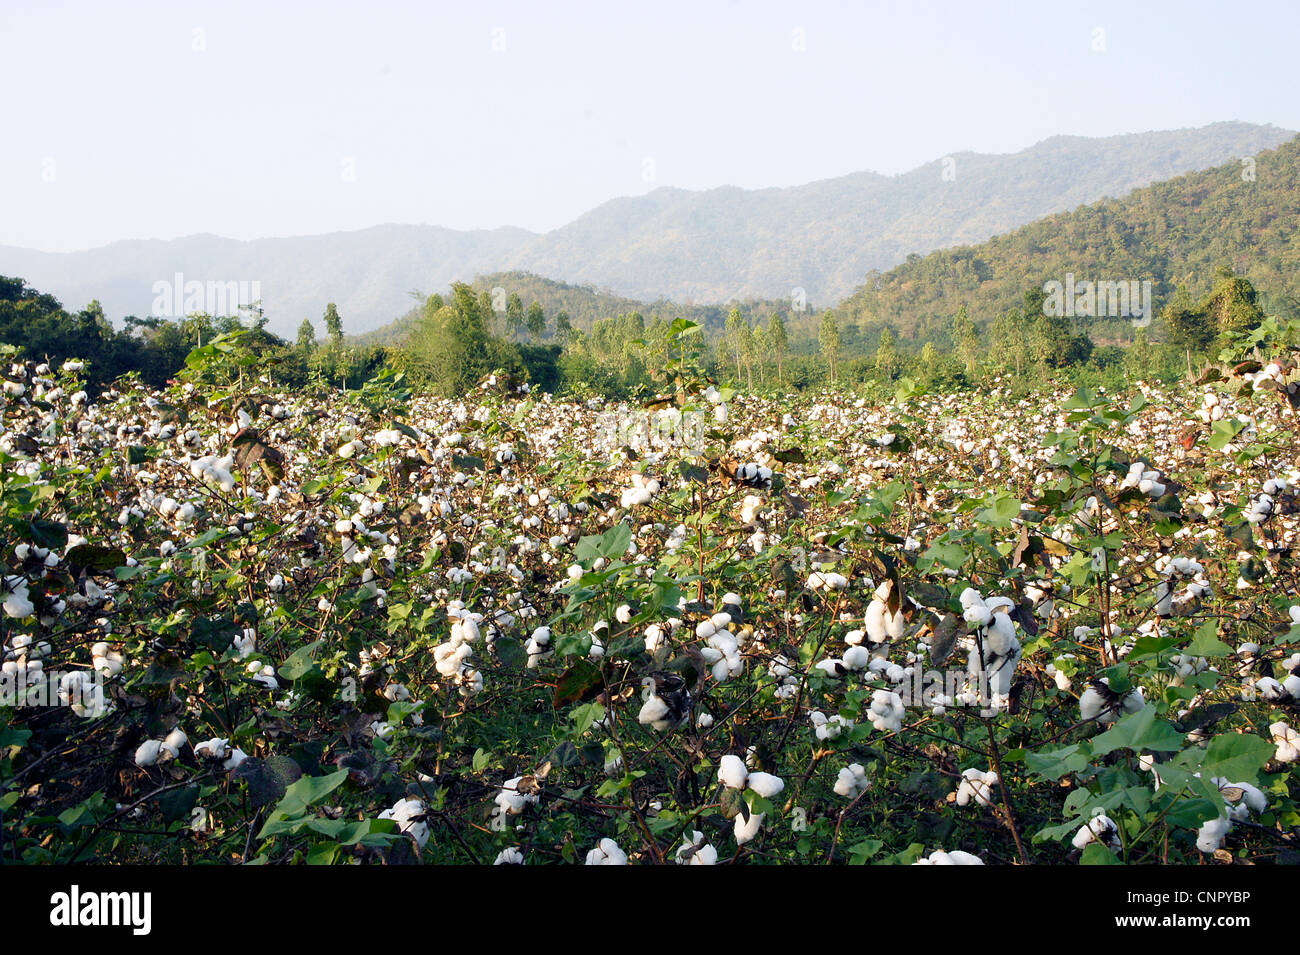 Cotton plants in a field against a mountain - Stock Image